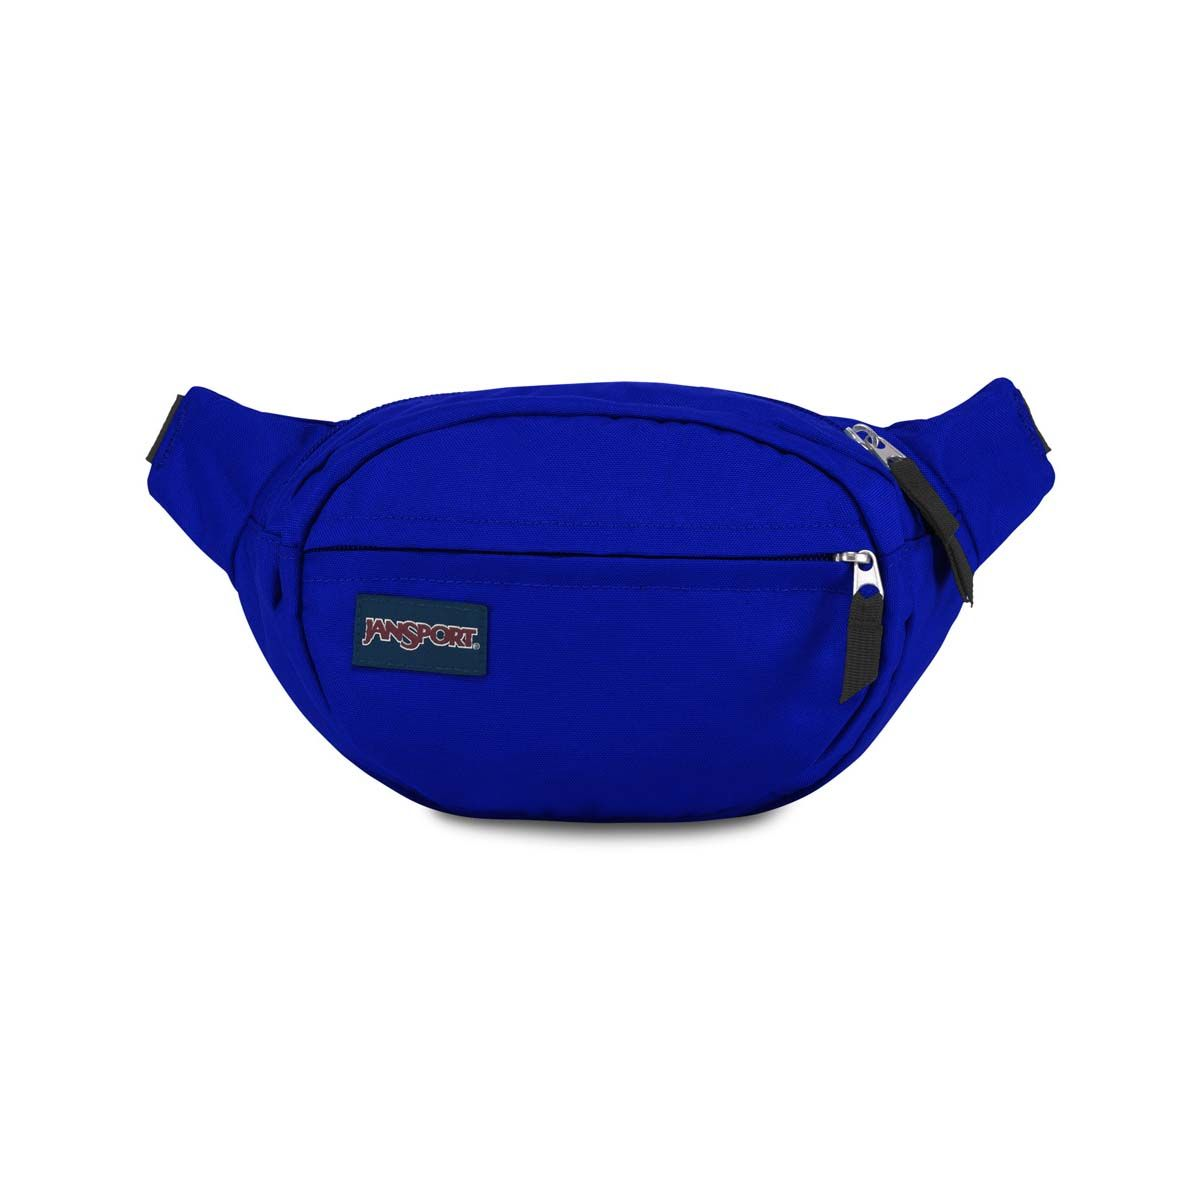 JanSport Fifth Ave Fanny Pack in Regal Blue